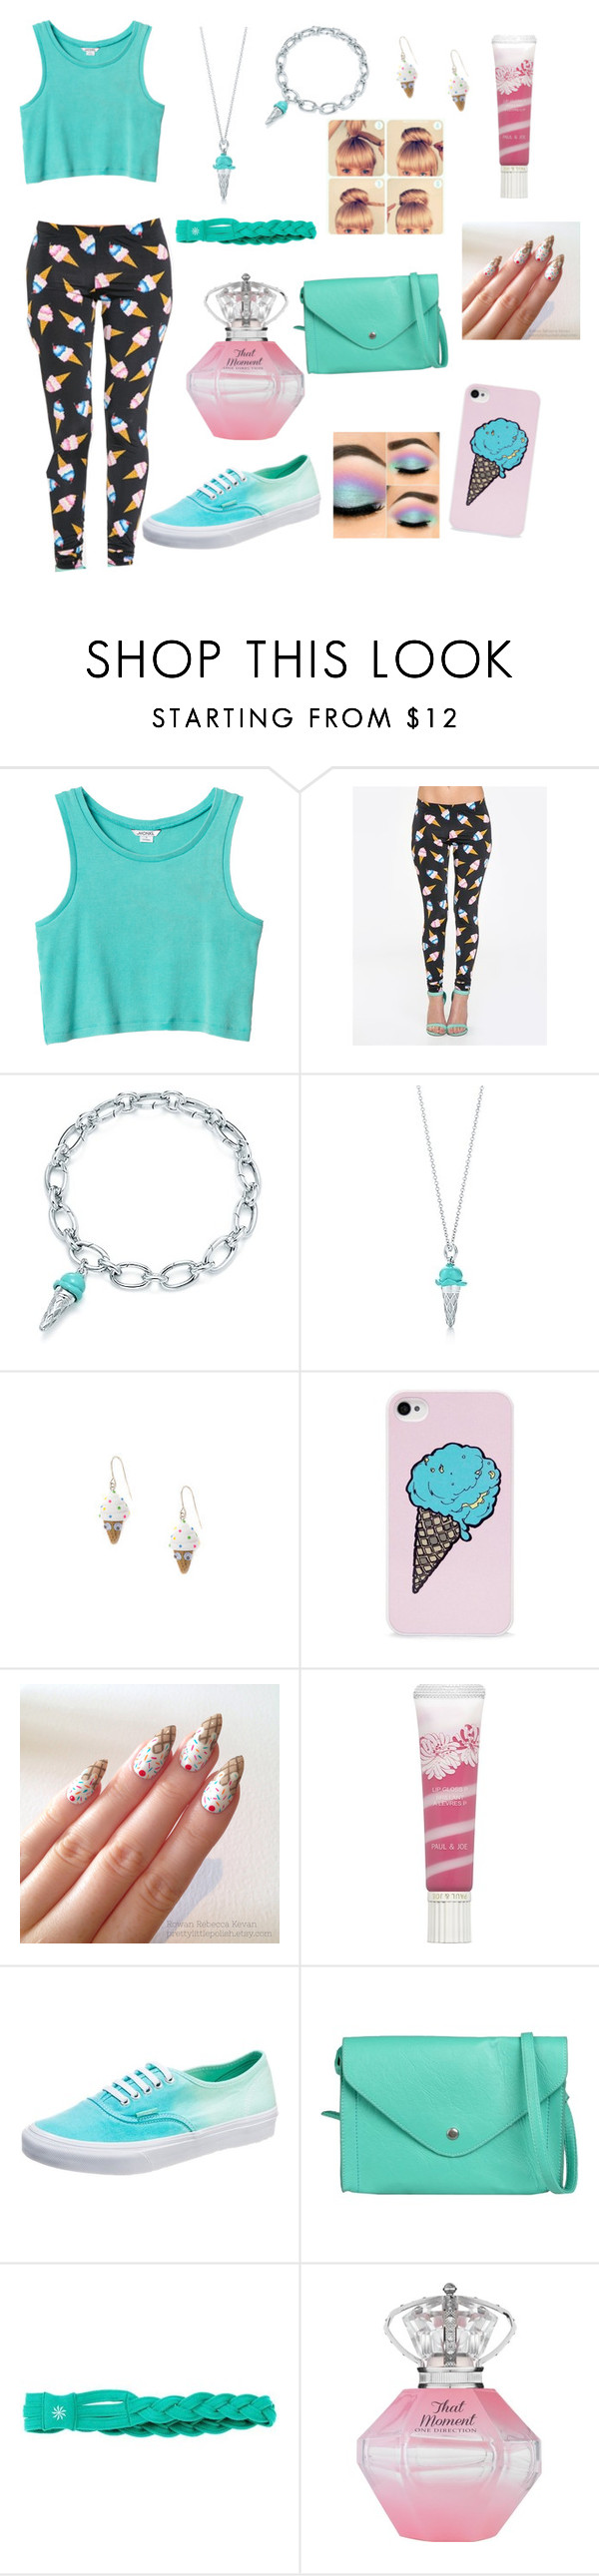 """ICE CREAM!!!!!!!!"" by cheer02 ❤ liked on Polyvore featuring Monki, ZooShoo, BlissfulCASE, Paul & Joe, Vans, ONLY and Athleta"